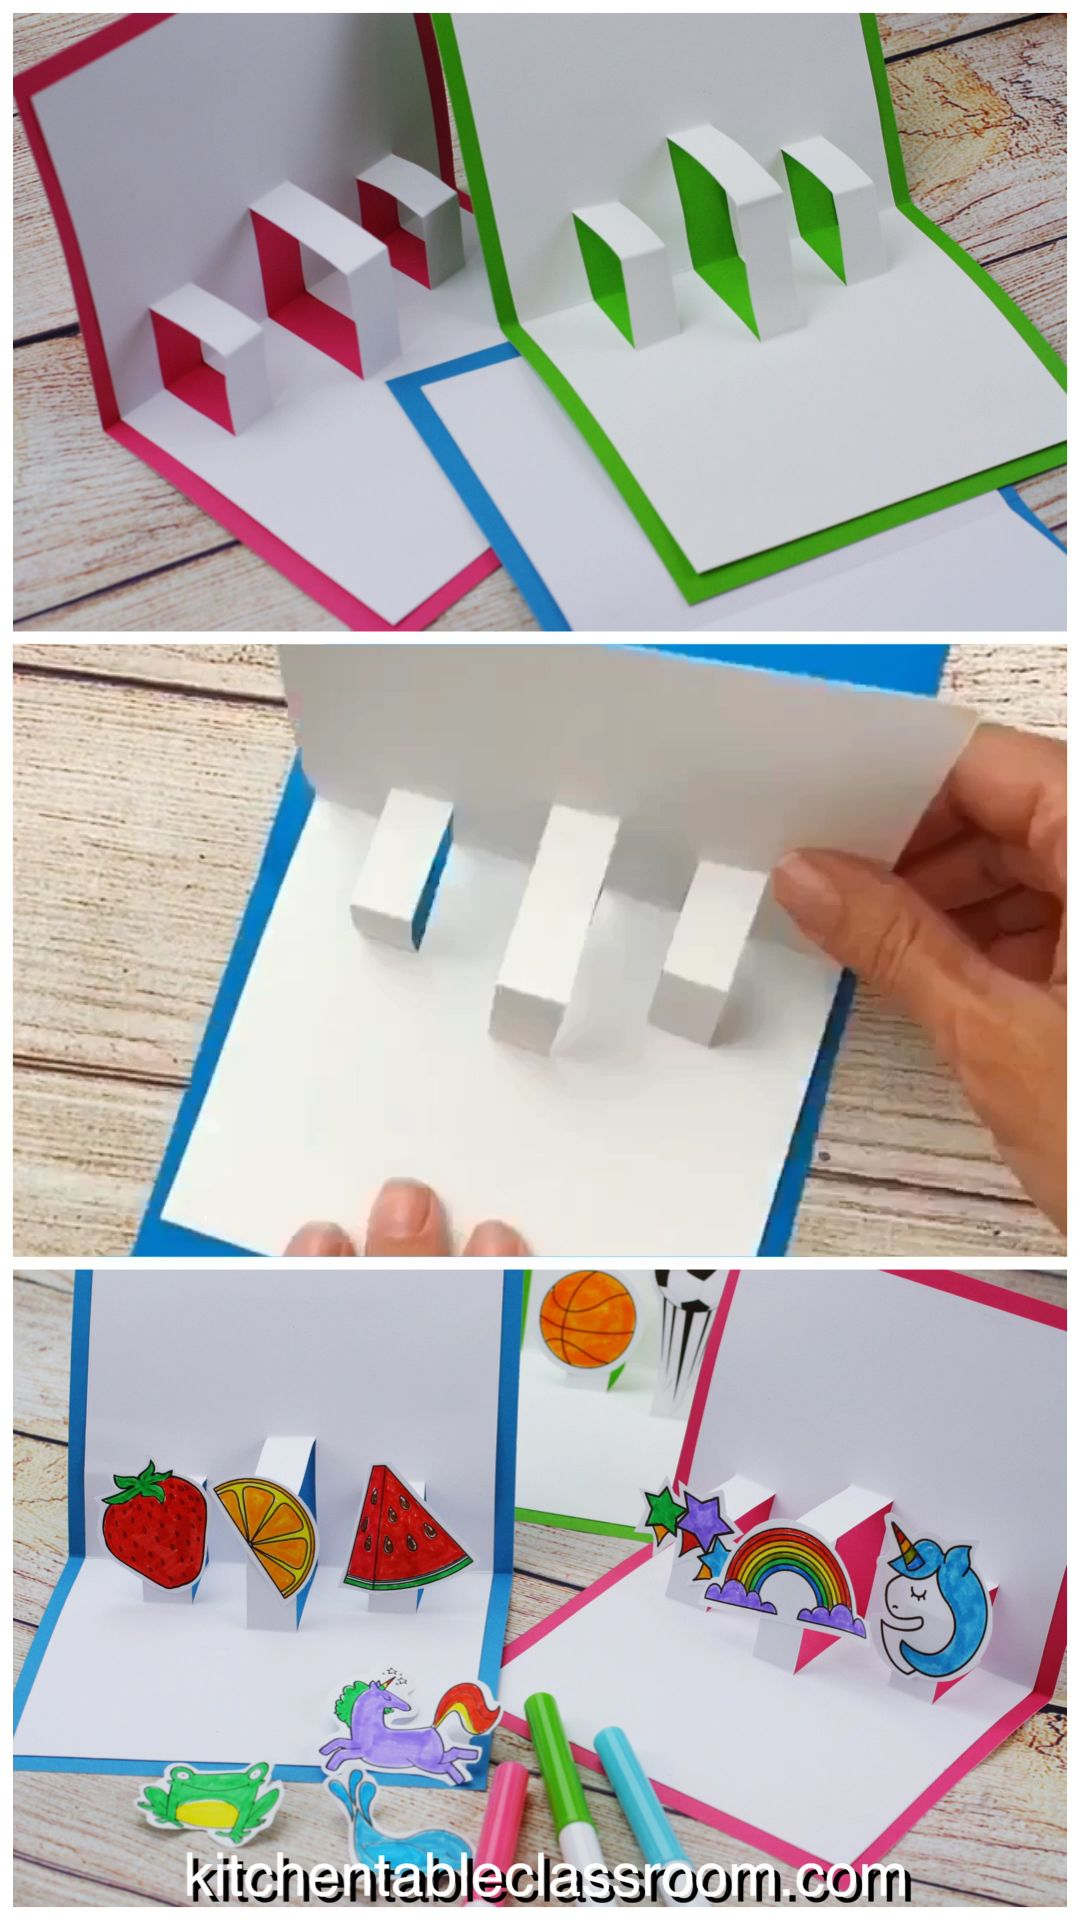 Build Your Own 3d Card With Free Pop Up Card Templates The Kitchen Table Classroom Video Video Pop Up Card Templates Diy Pop Up Cards Cards Handmade